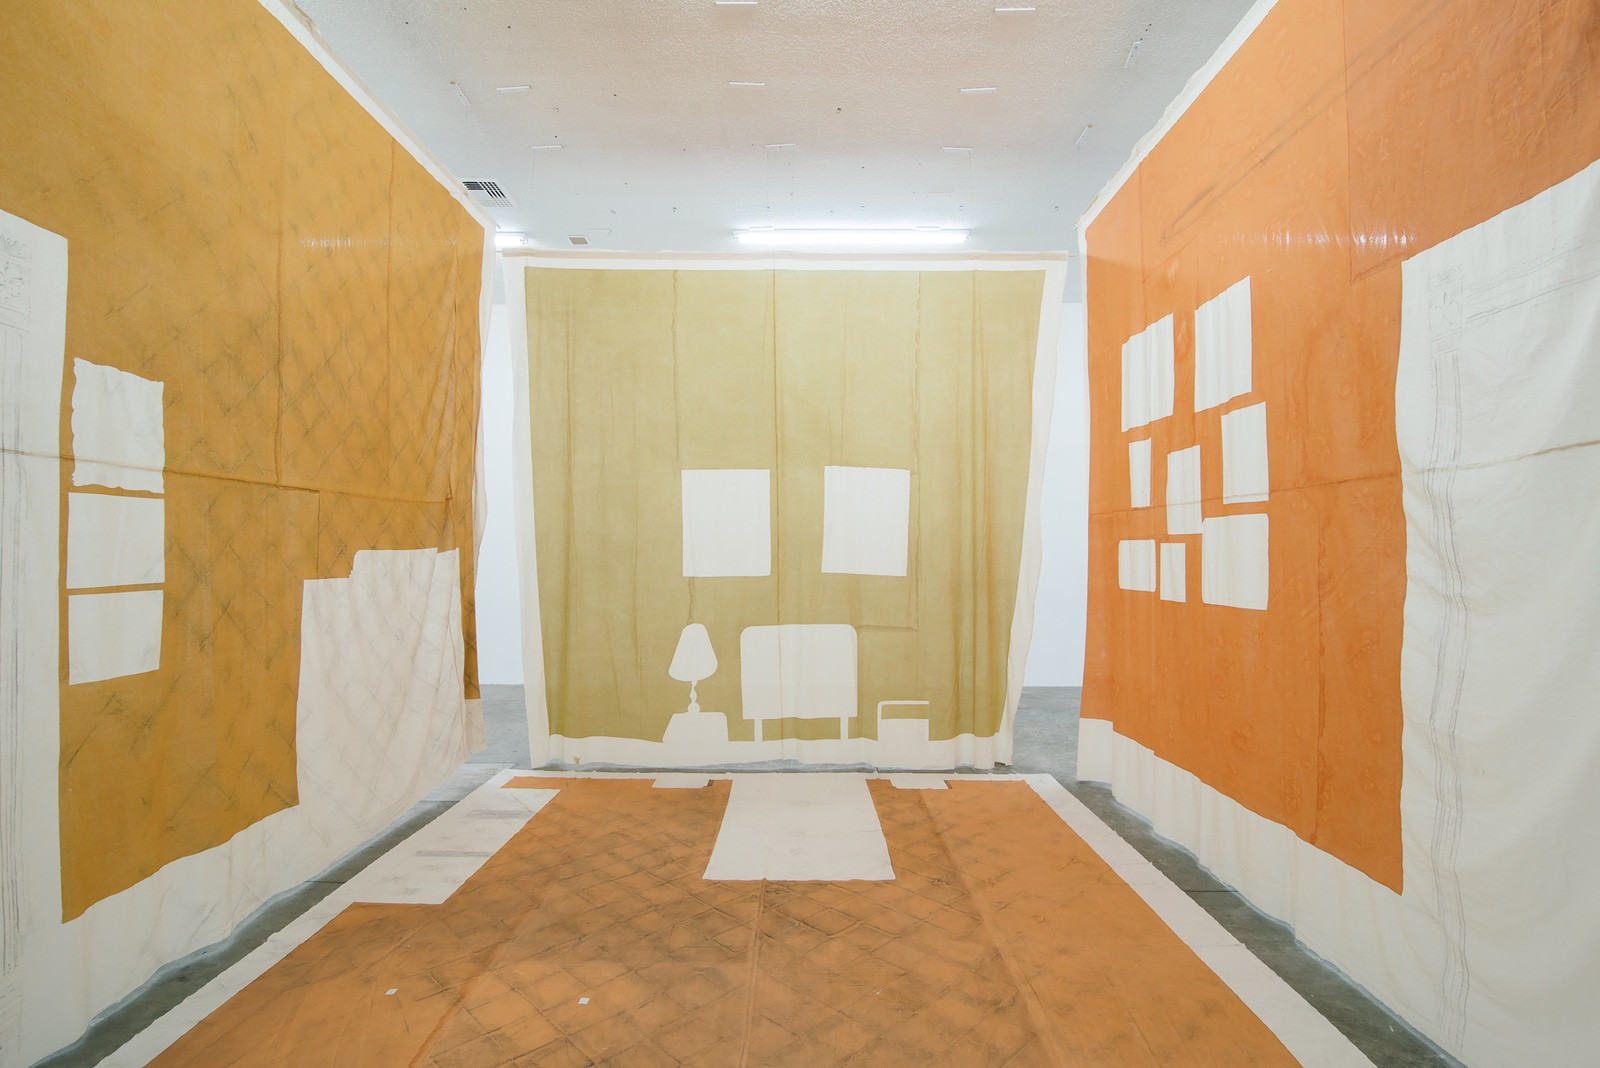 Carmen Argote, My father's side of home, 2014. IN/SITU, curated by Pablo León de la Barra (Curator at Large, Latin America, Solomon R. Guggenheim Museum).